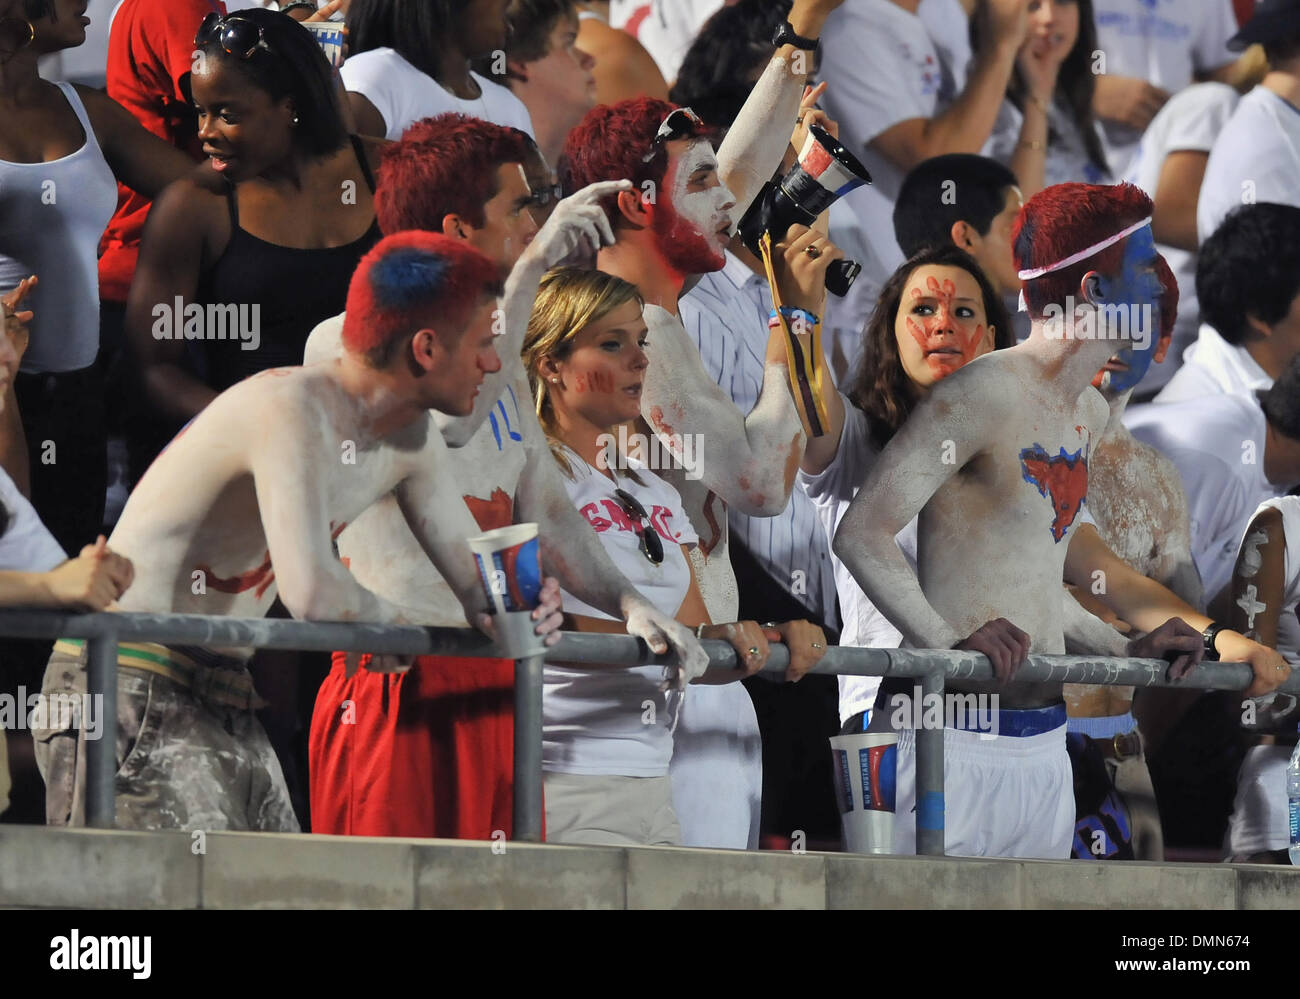 05 SEP 2009:  Stephen F Austin travels to Dallas to face the SMU Ponies in the season kickoff.  With a 4th quarter come back the Ponies win 31-23 over SFA.  SMU Mustange student section cheers on the Ponies in their victory. (Credit Image: © Southcreek Global/ZUMApress.com) - Stock Image